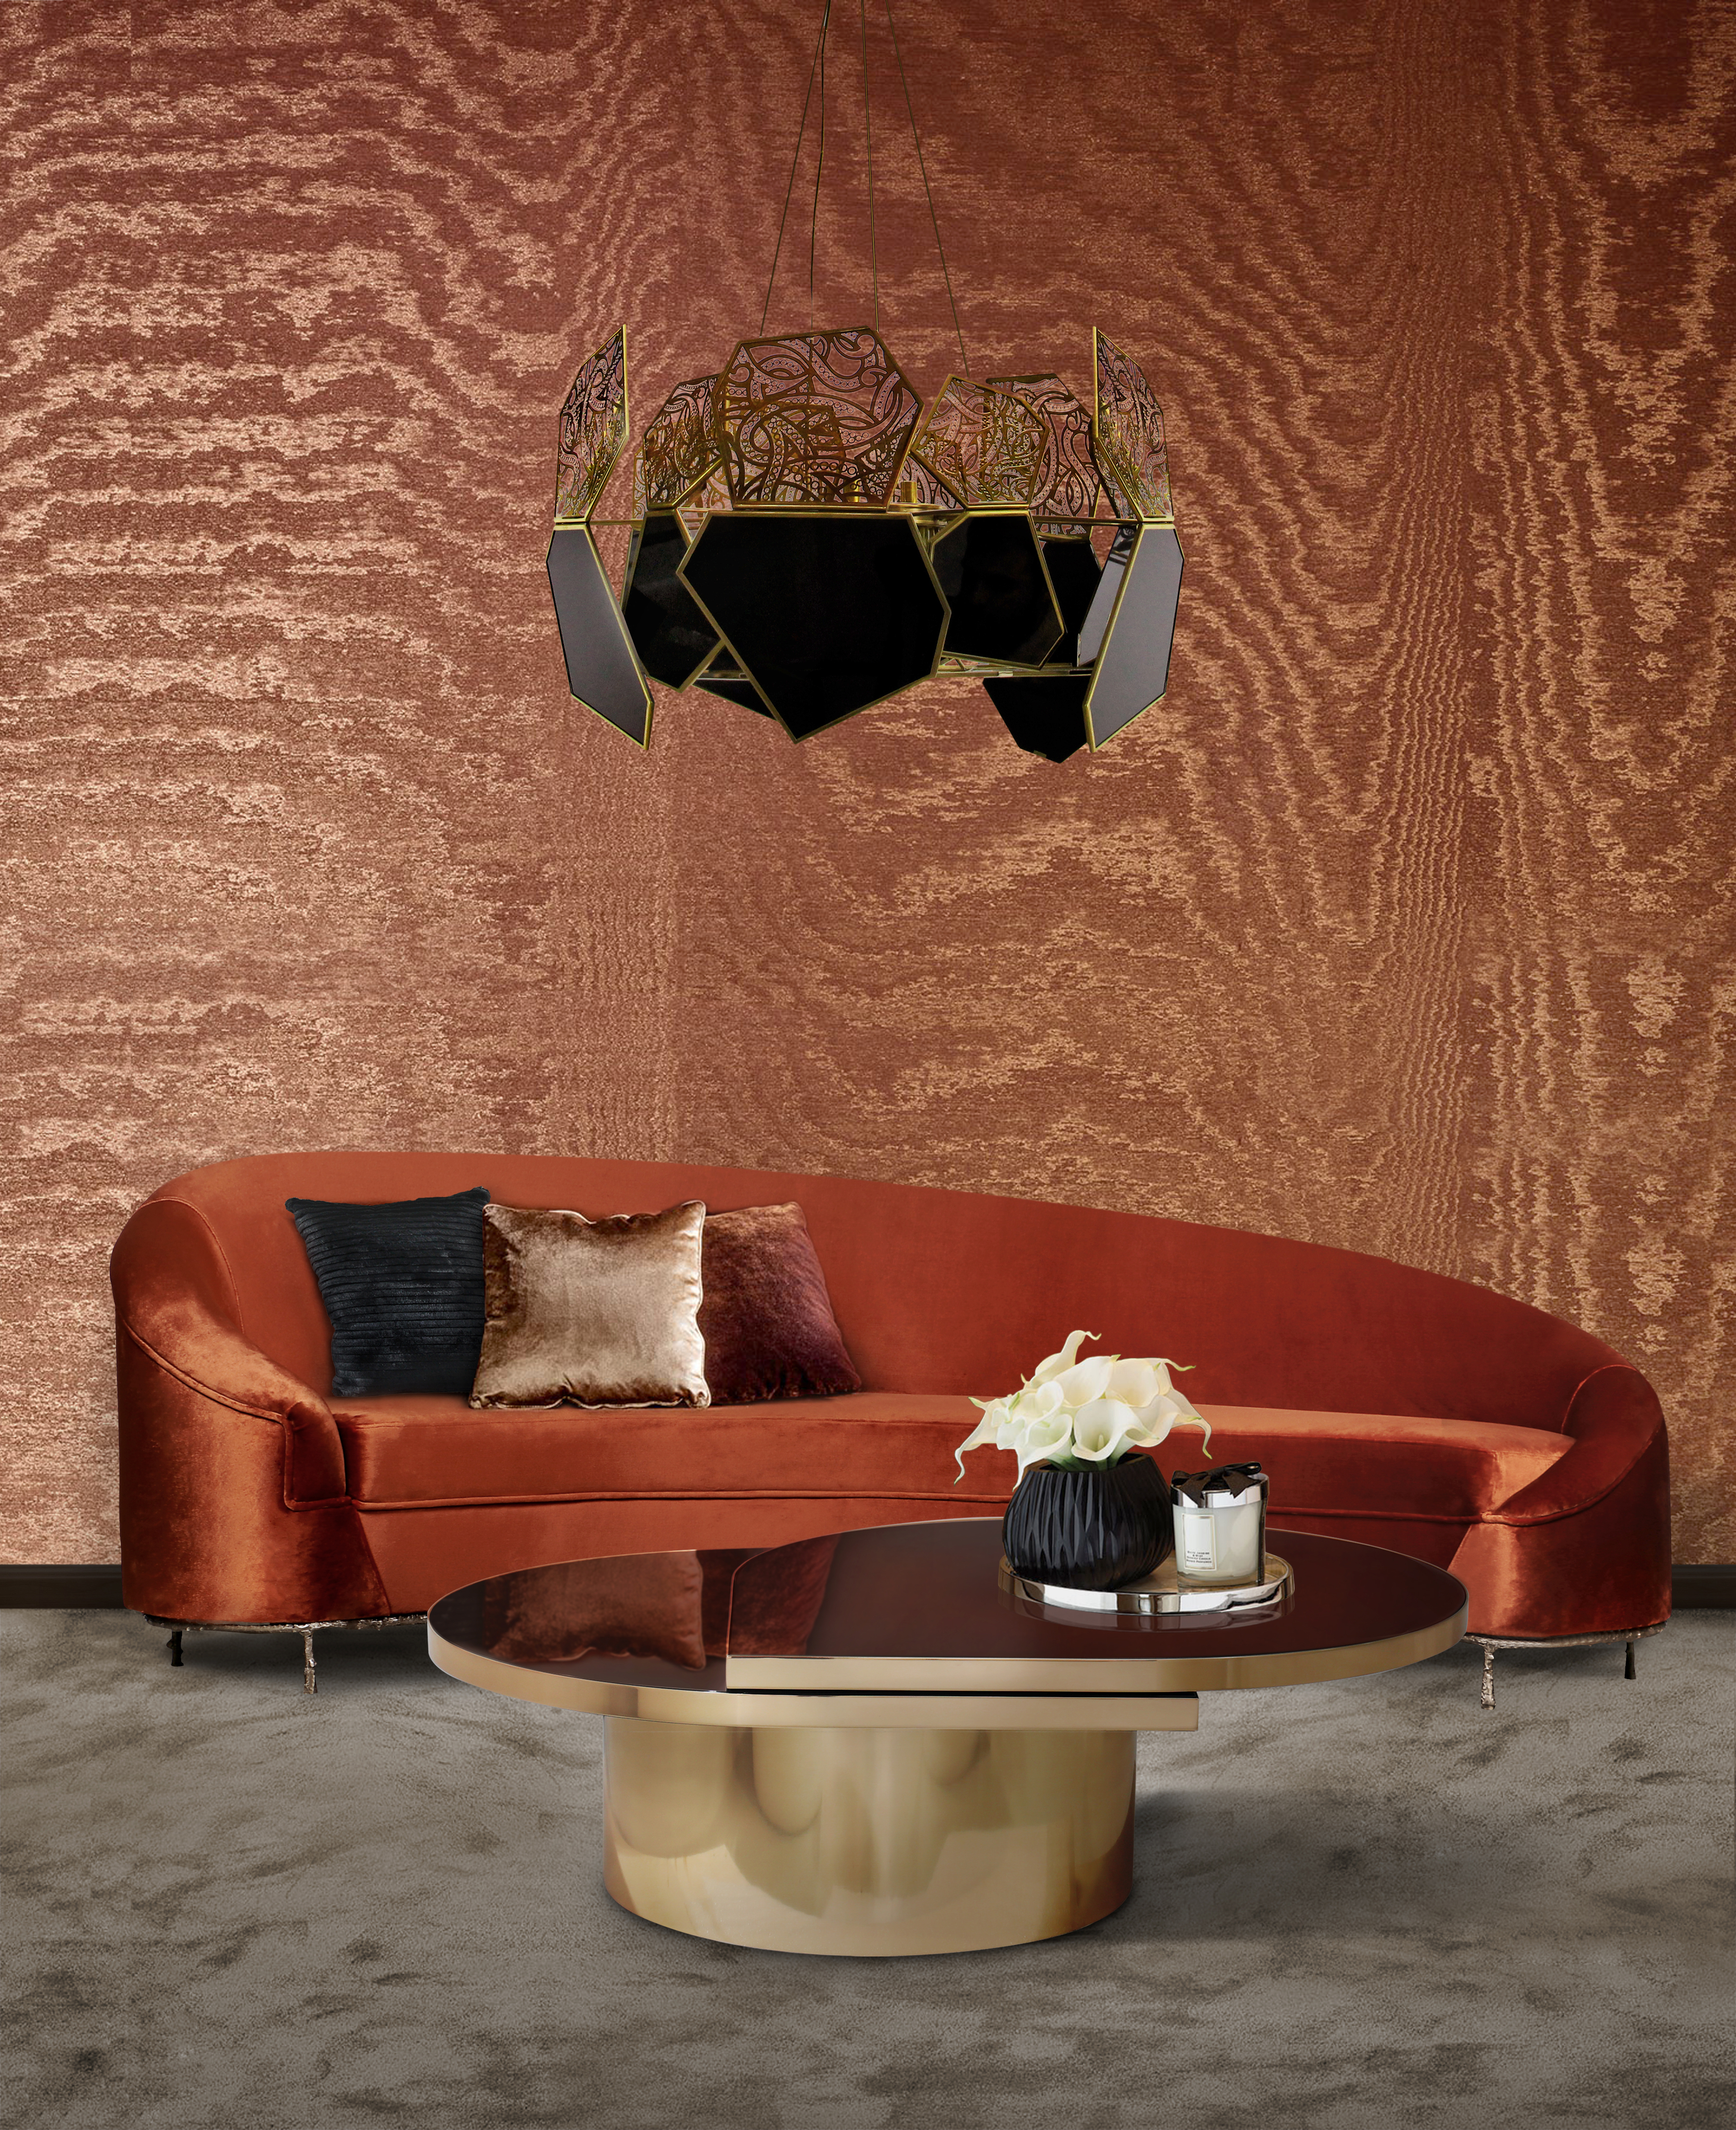 Metallic Animal Print Wallpaper Inspirations Amp Ideas Autumn Colors Ideas To Use In